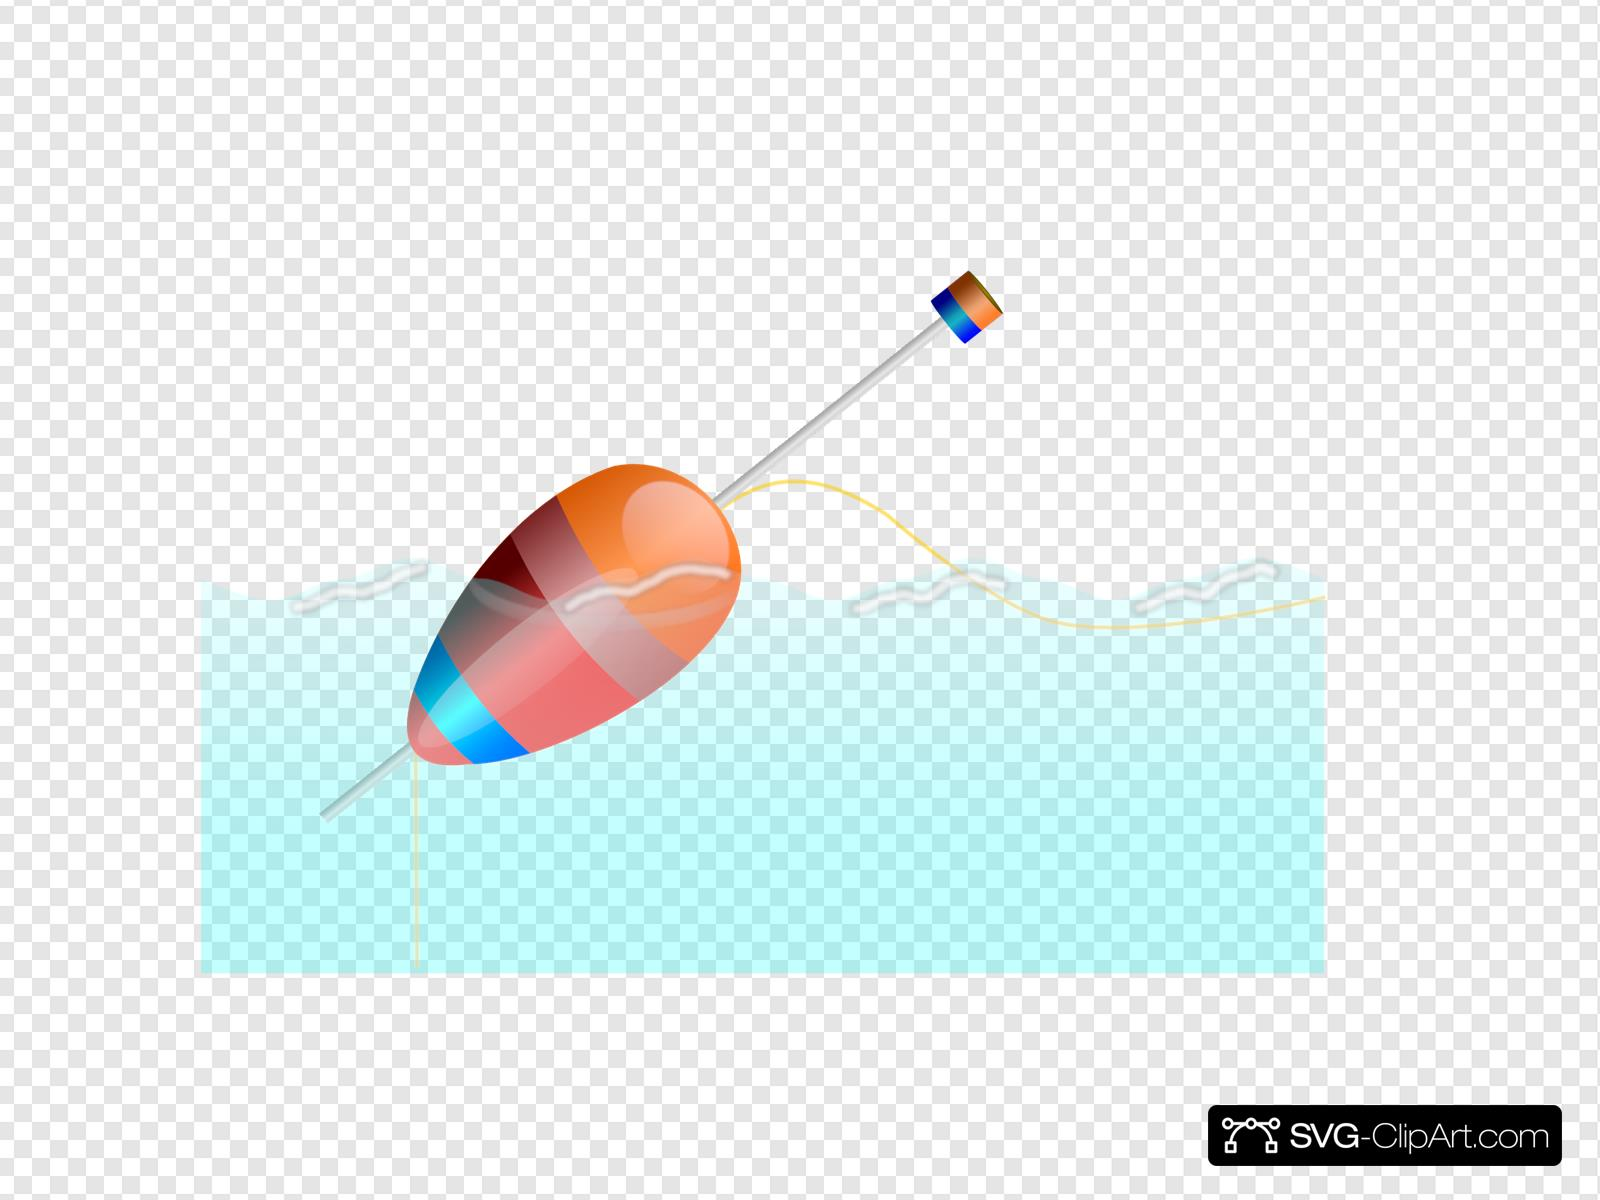 Download Fishing Lure Svg Vector Fishing Lure Clip Art Svg Clipart